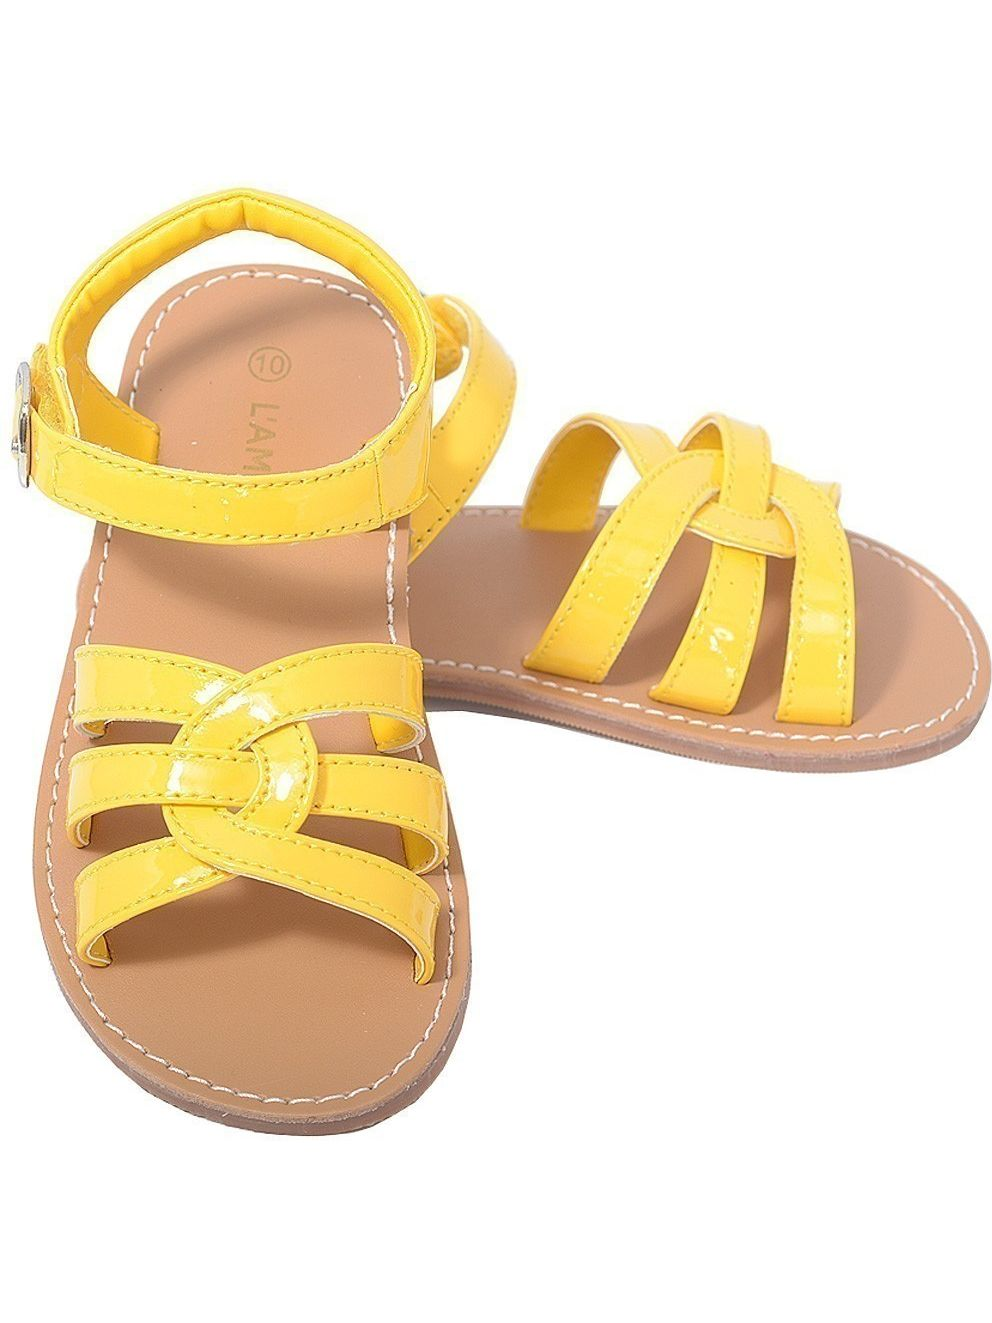 L'Amour Summer Patent Yellow Woven Strap Summer L'Amour Sandals Little Girls 11-4 a3fe34